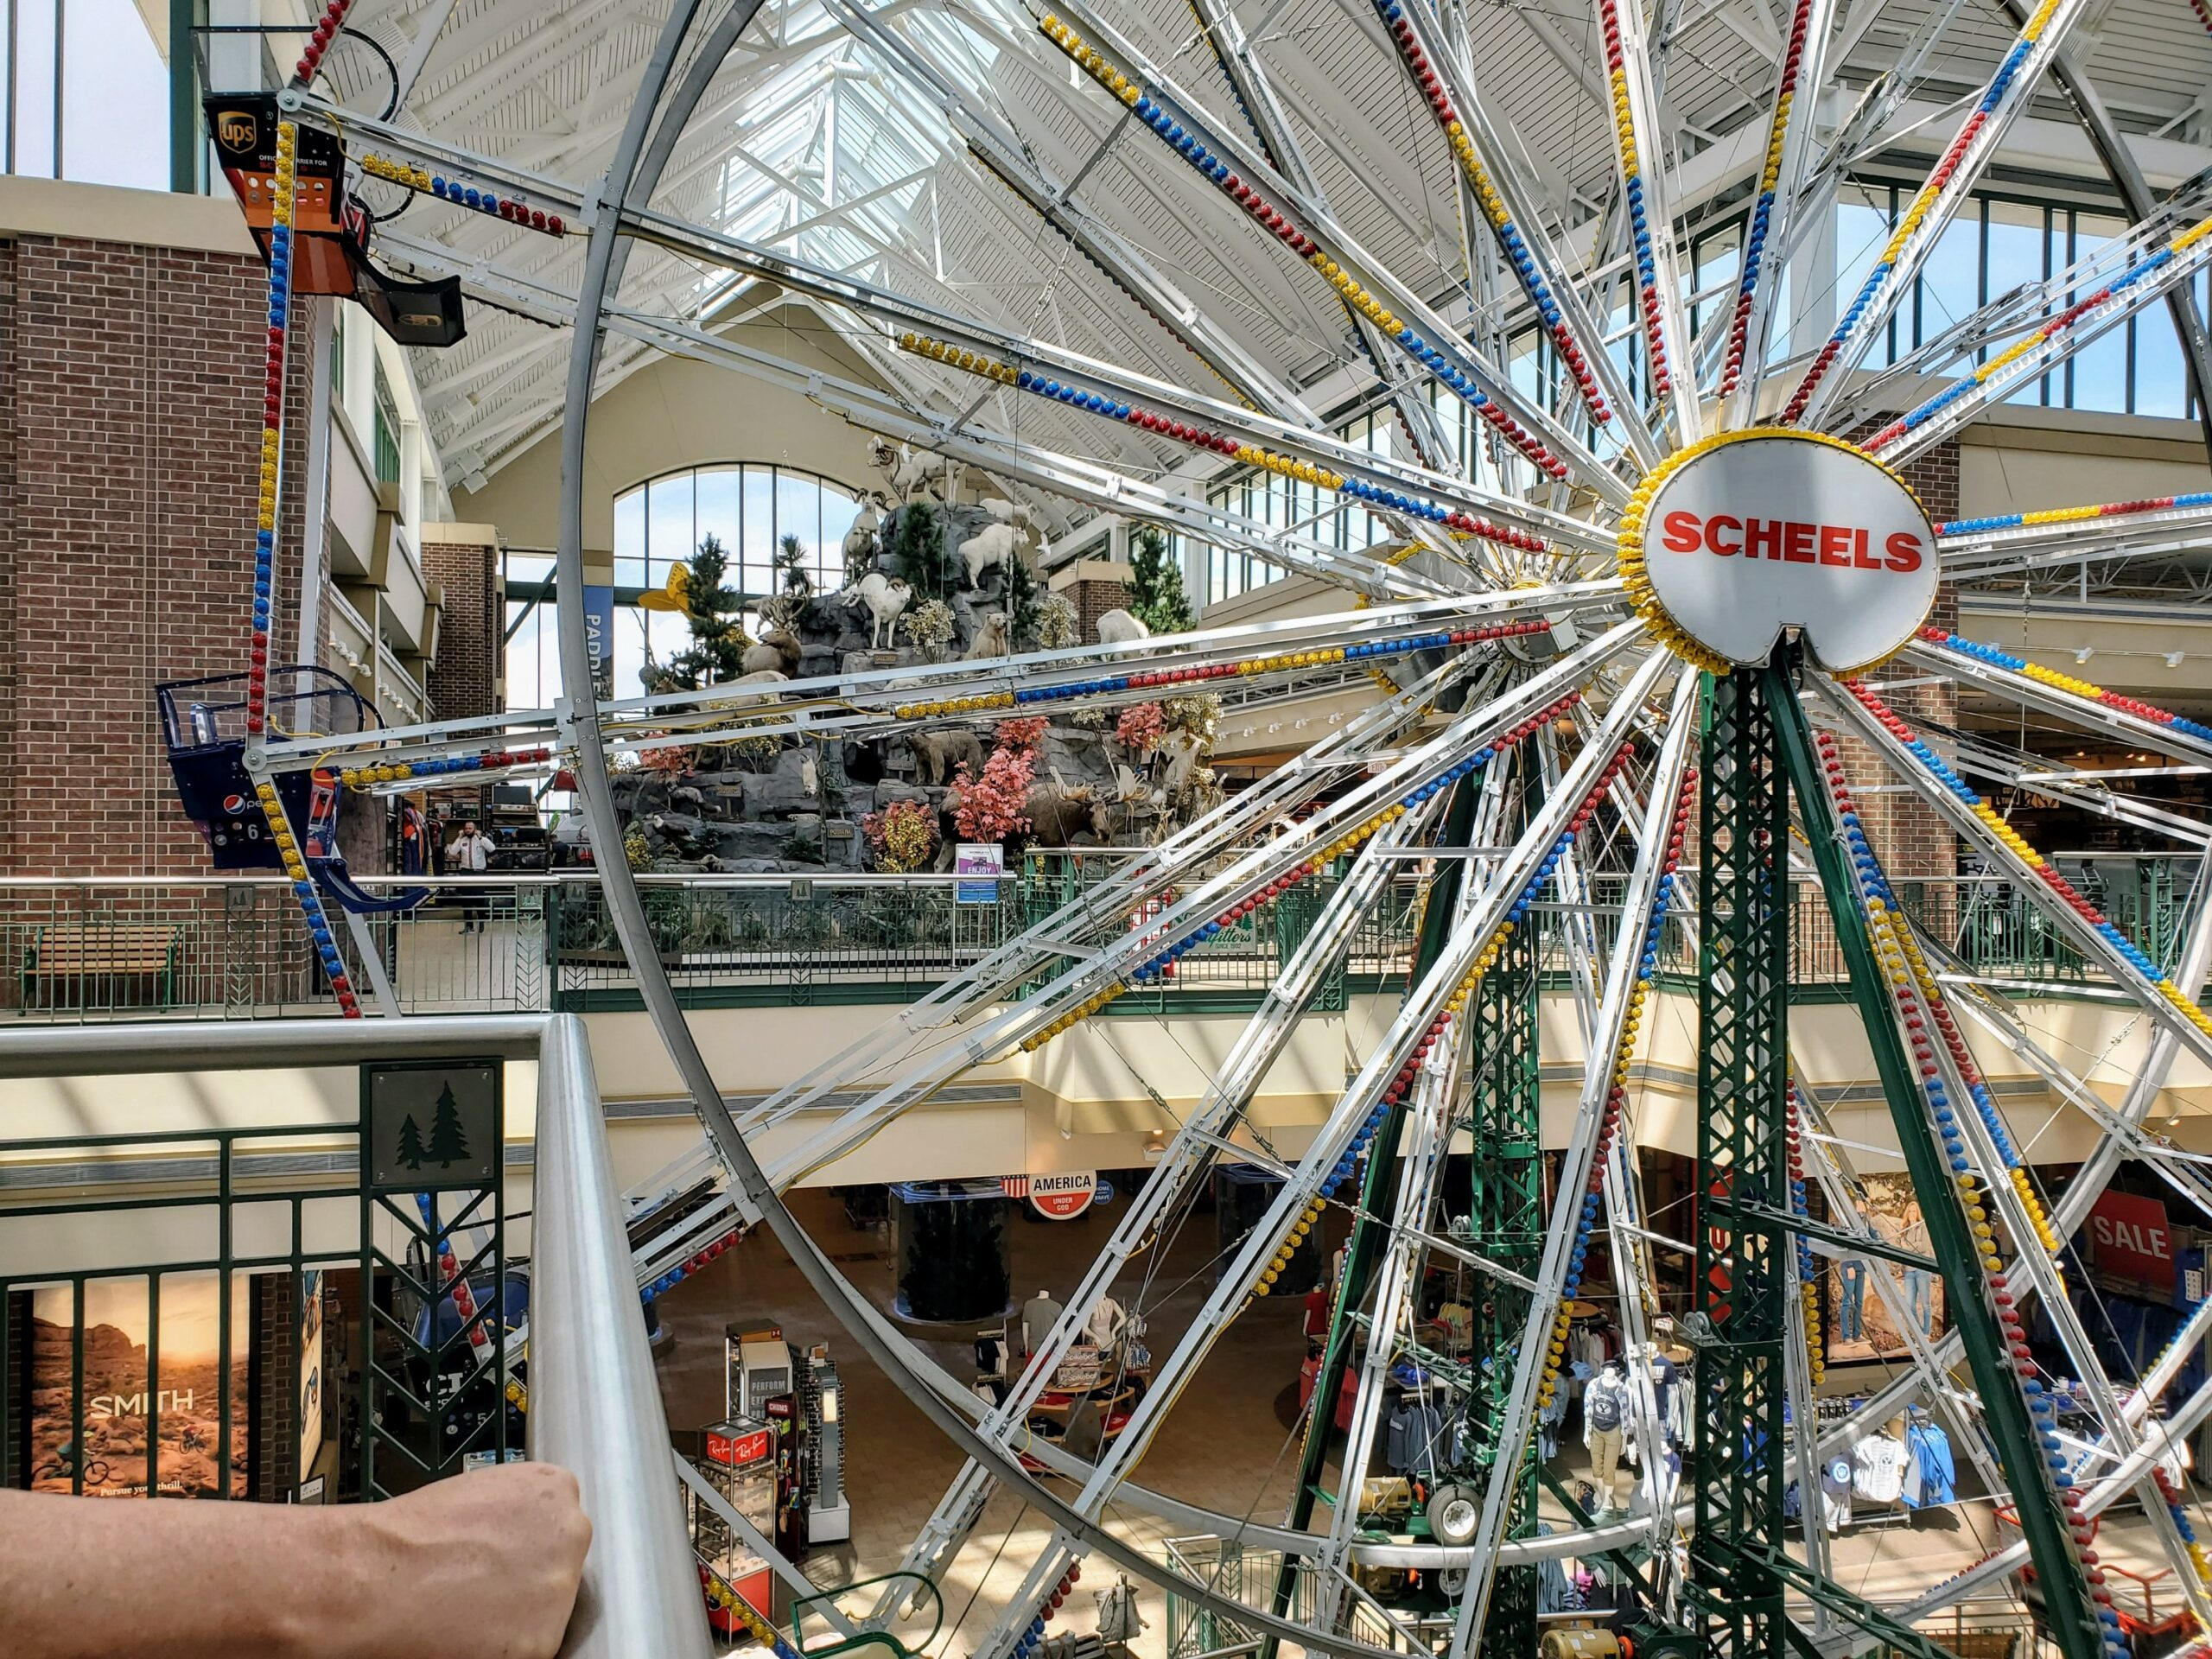 Ferris Wheel in Scheels, Draper, UT